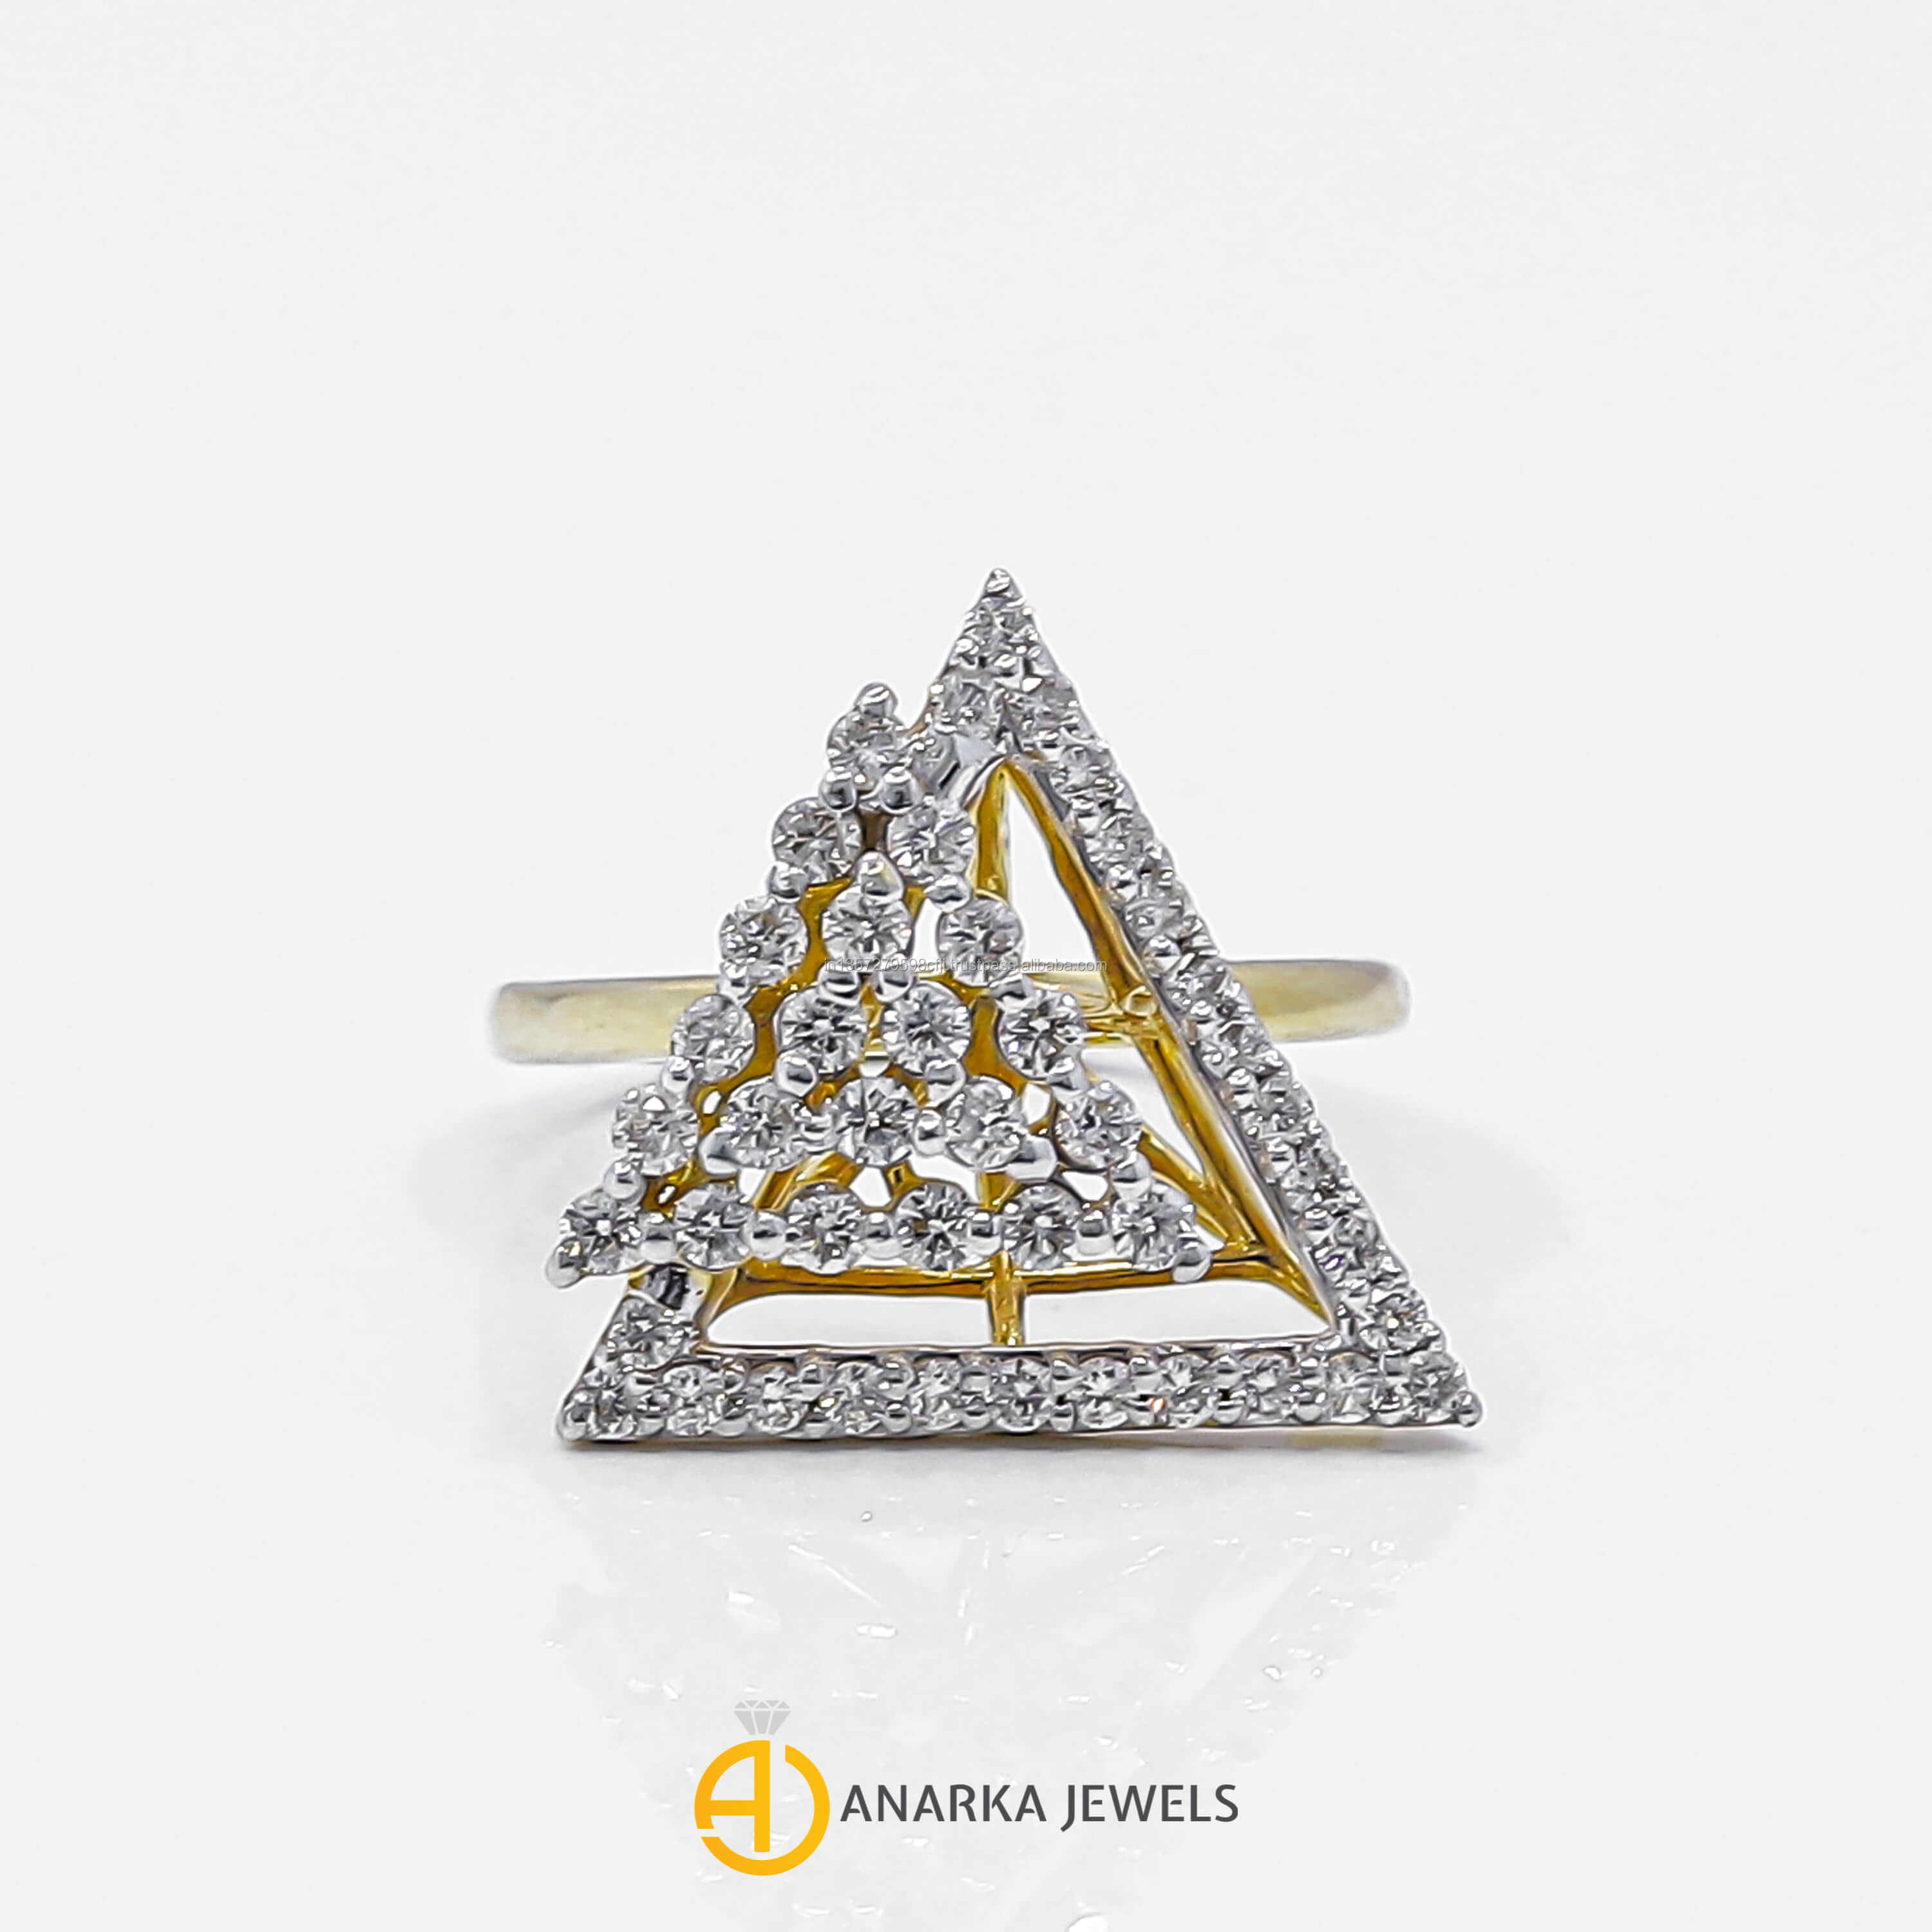 14K Yellow Gold Diamond Geometrical Design Triangle Shape Ring PPR-946